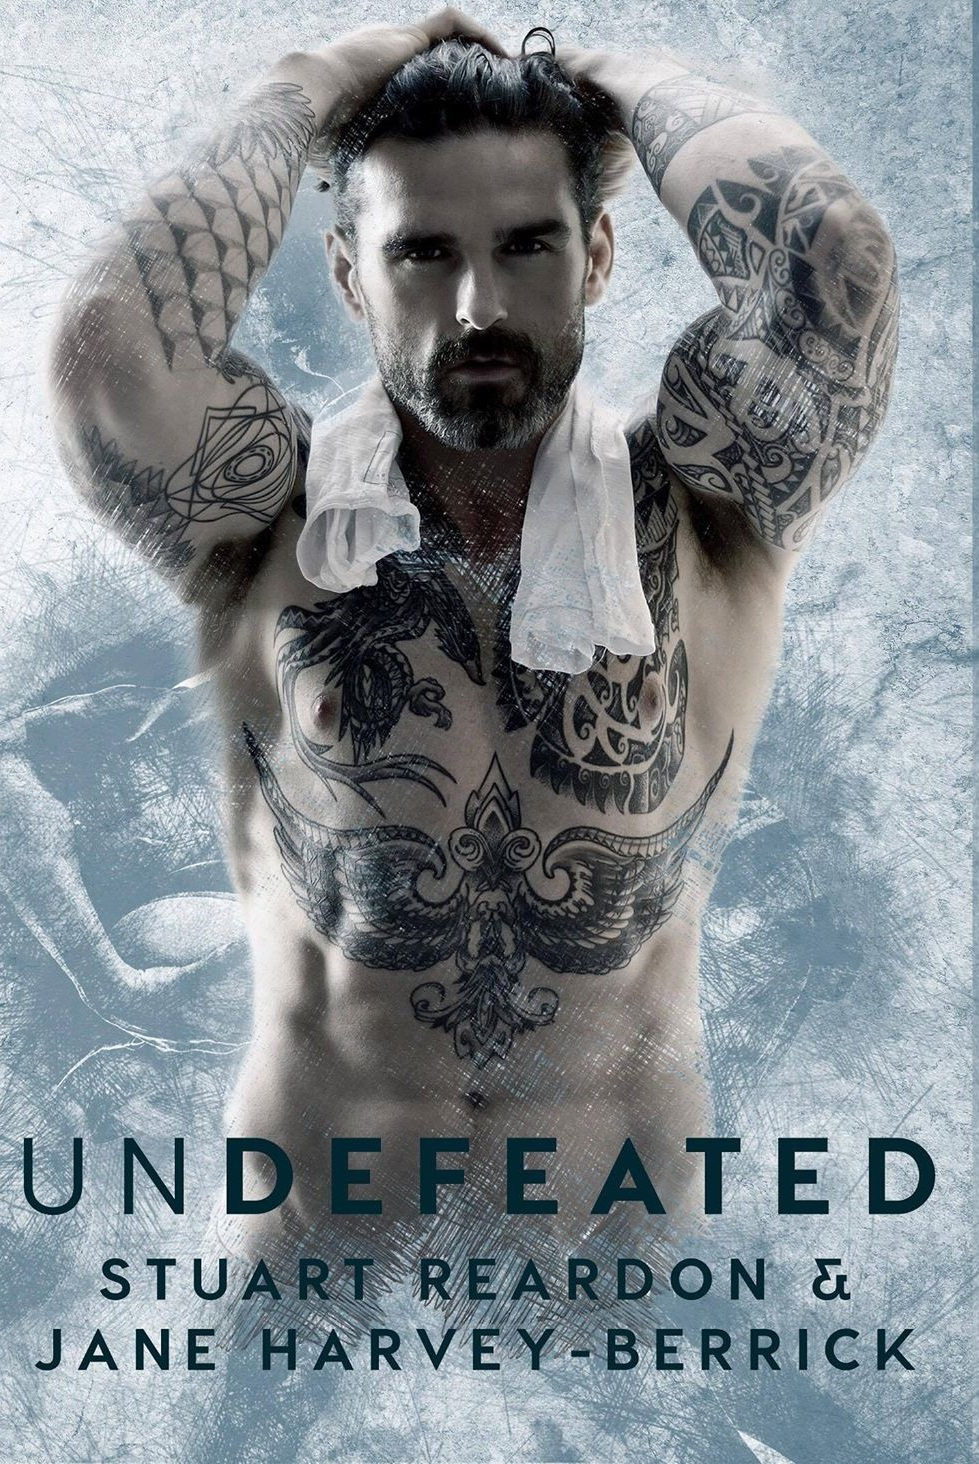 Undefeated by Jane Harvey-Berrick, Stuart Reardon